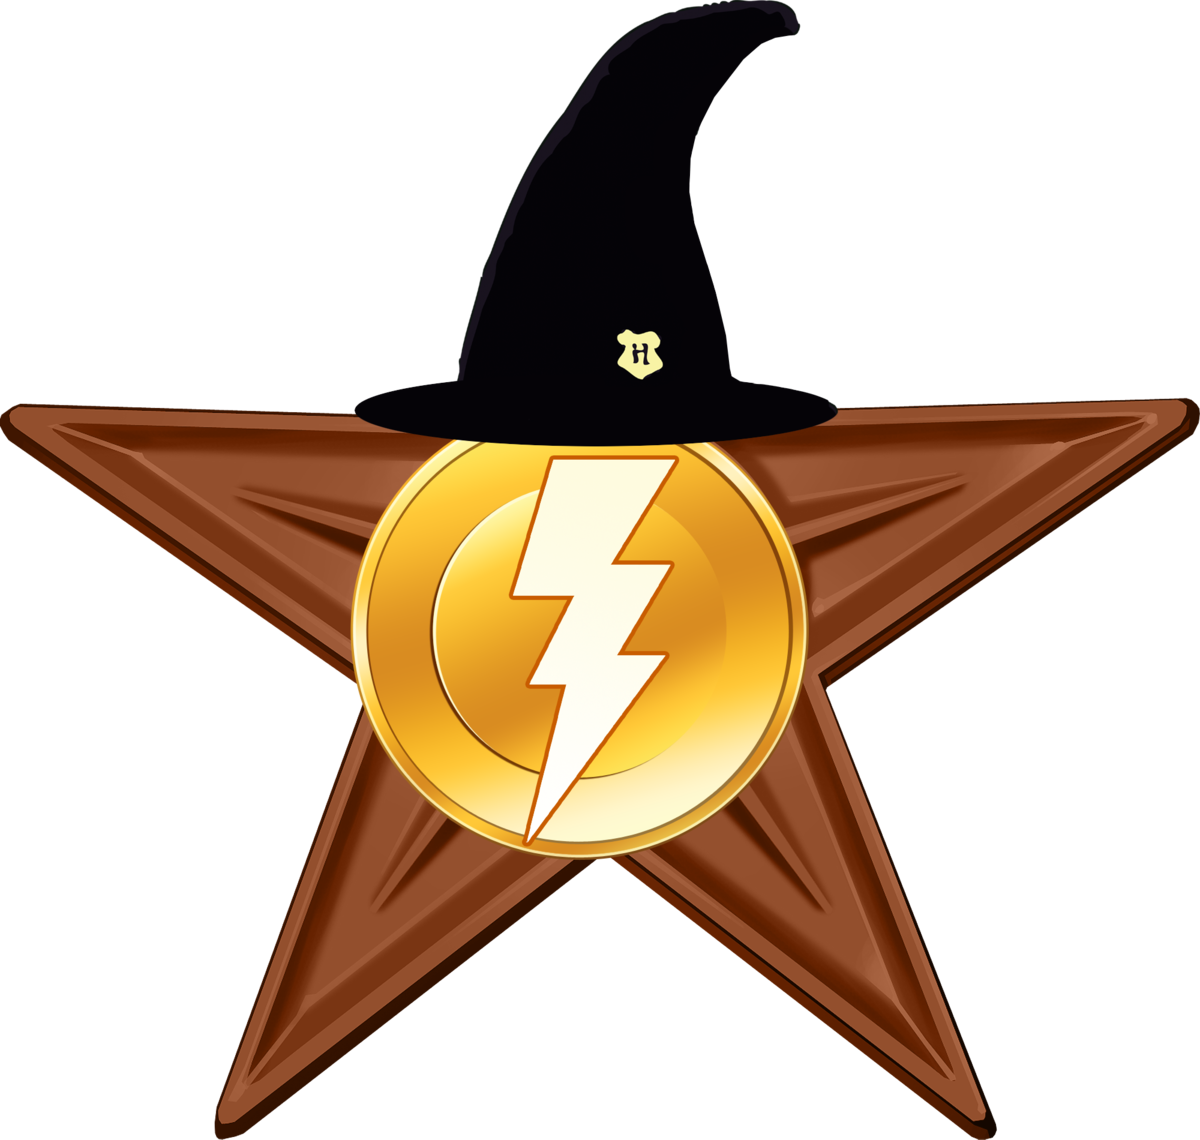 File:Harry Potter Barnstar Hires.png - Wikimedia Commons